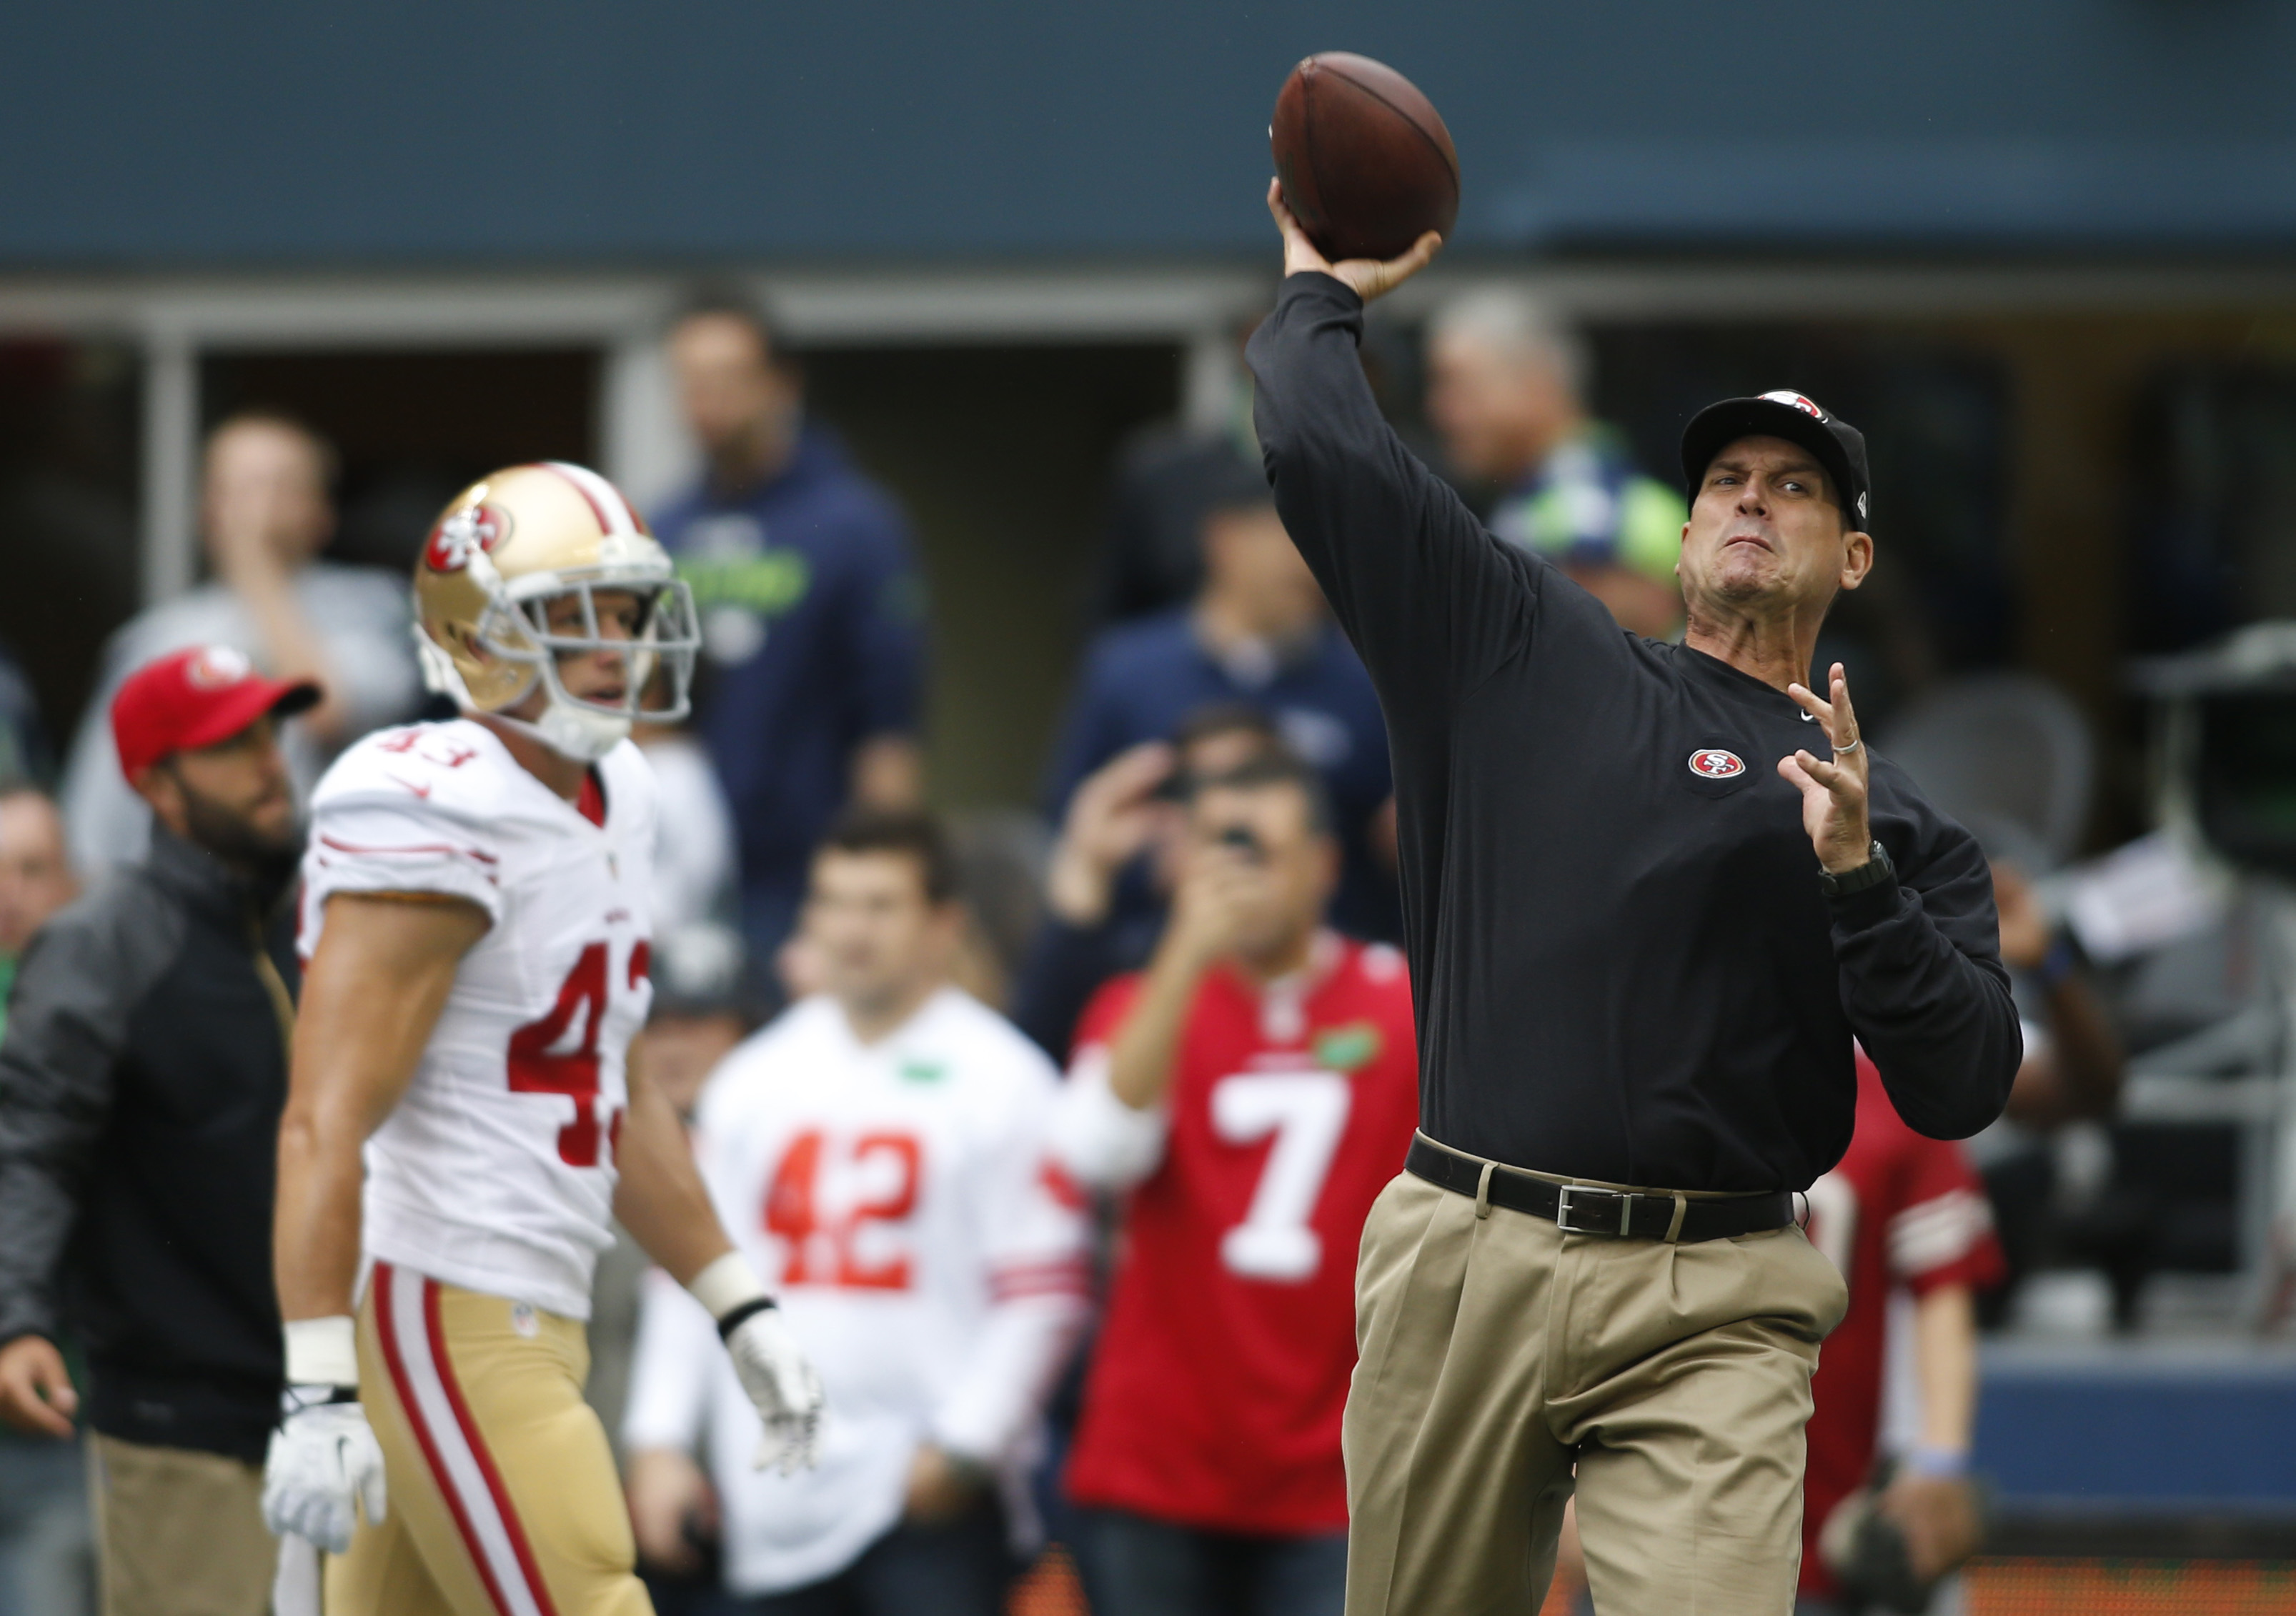 San Francisco 49ers head coach Jim Harbaugh, right, passes during warmups before an NFL football game against the Seattle Seahawks, Sunday, Sept. 15, 2013, in Seattle